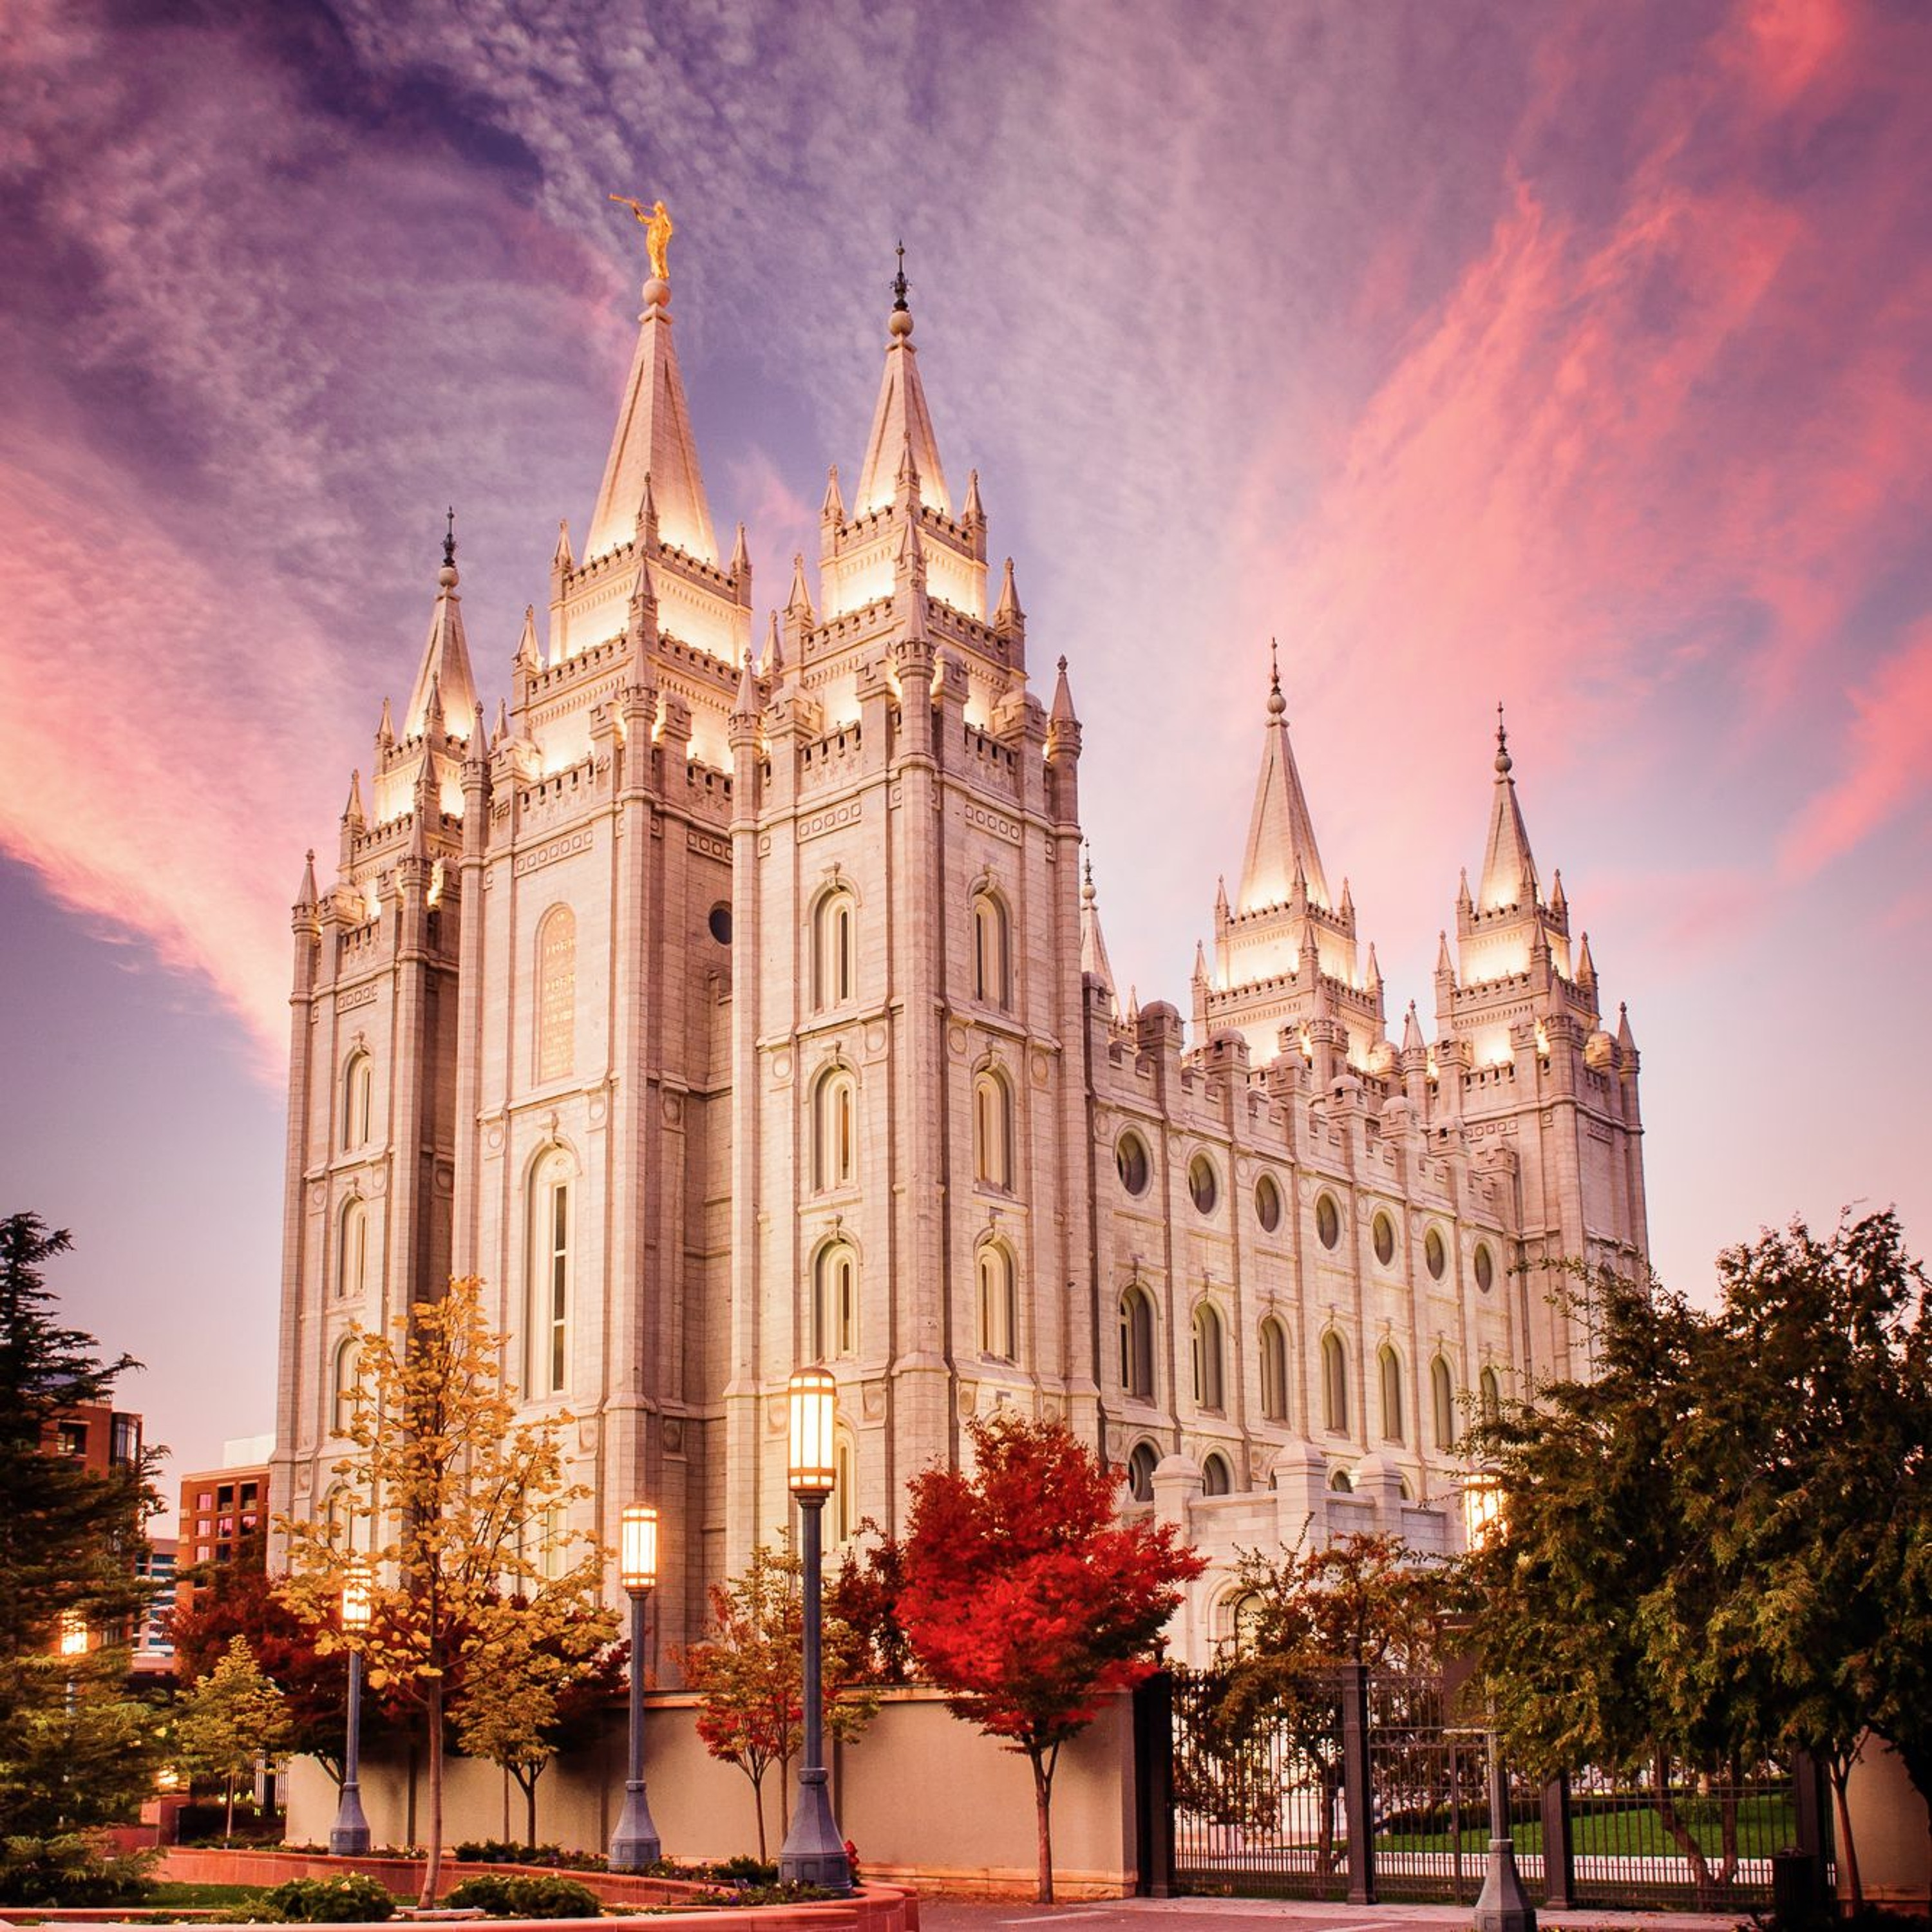 The temple endowment has changed over...